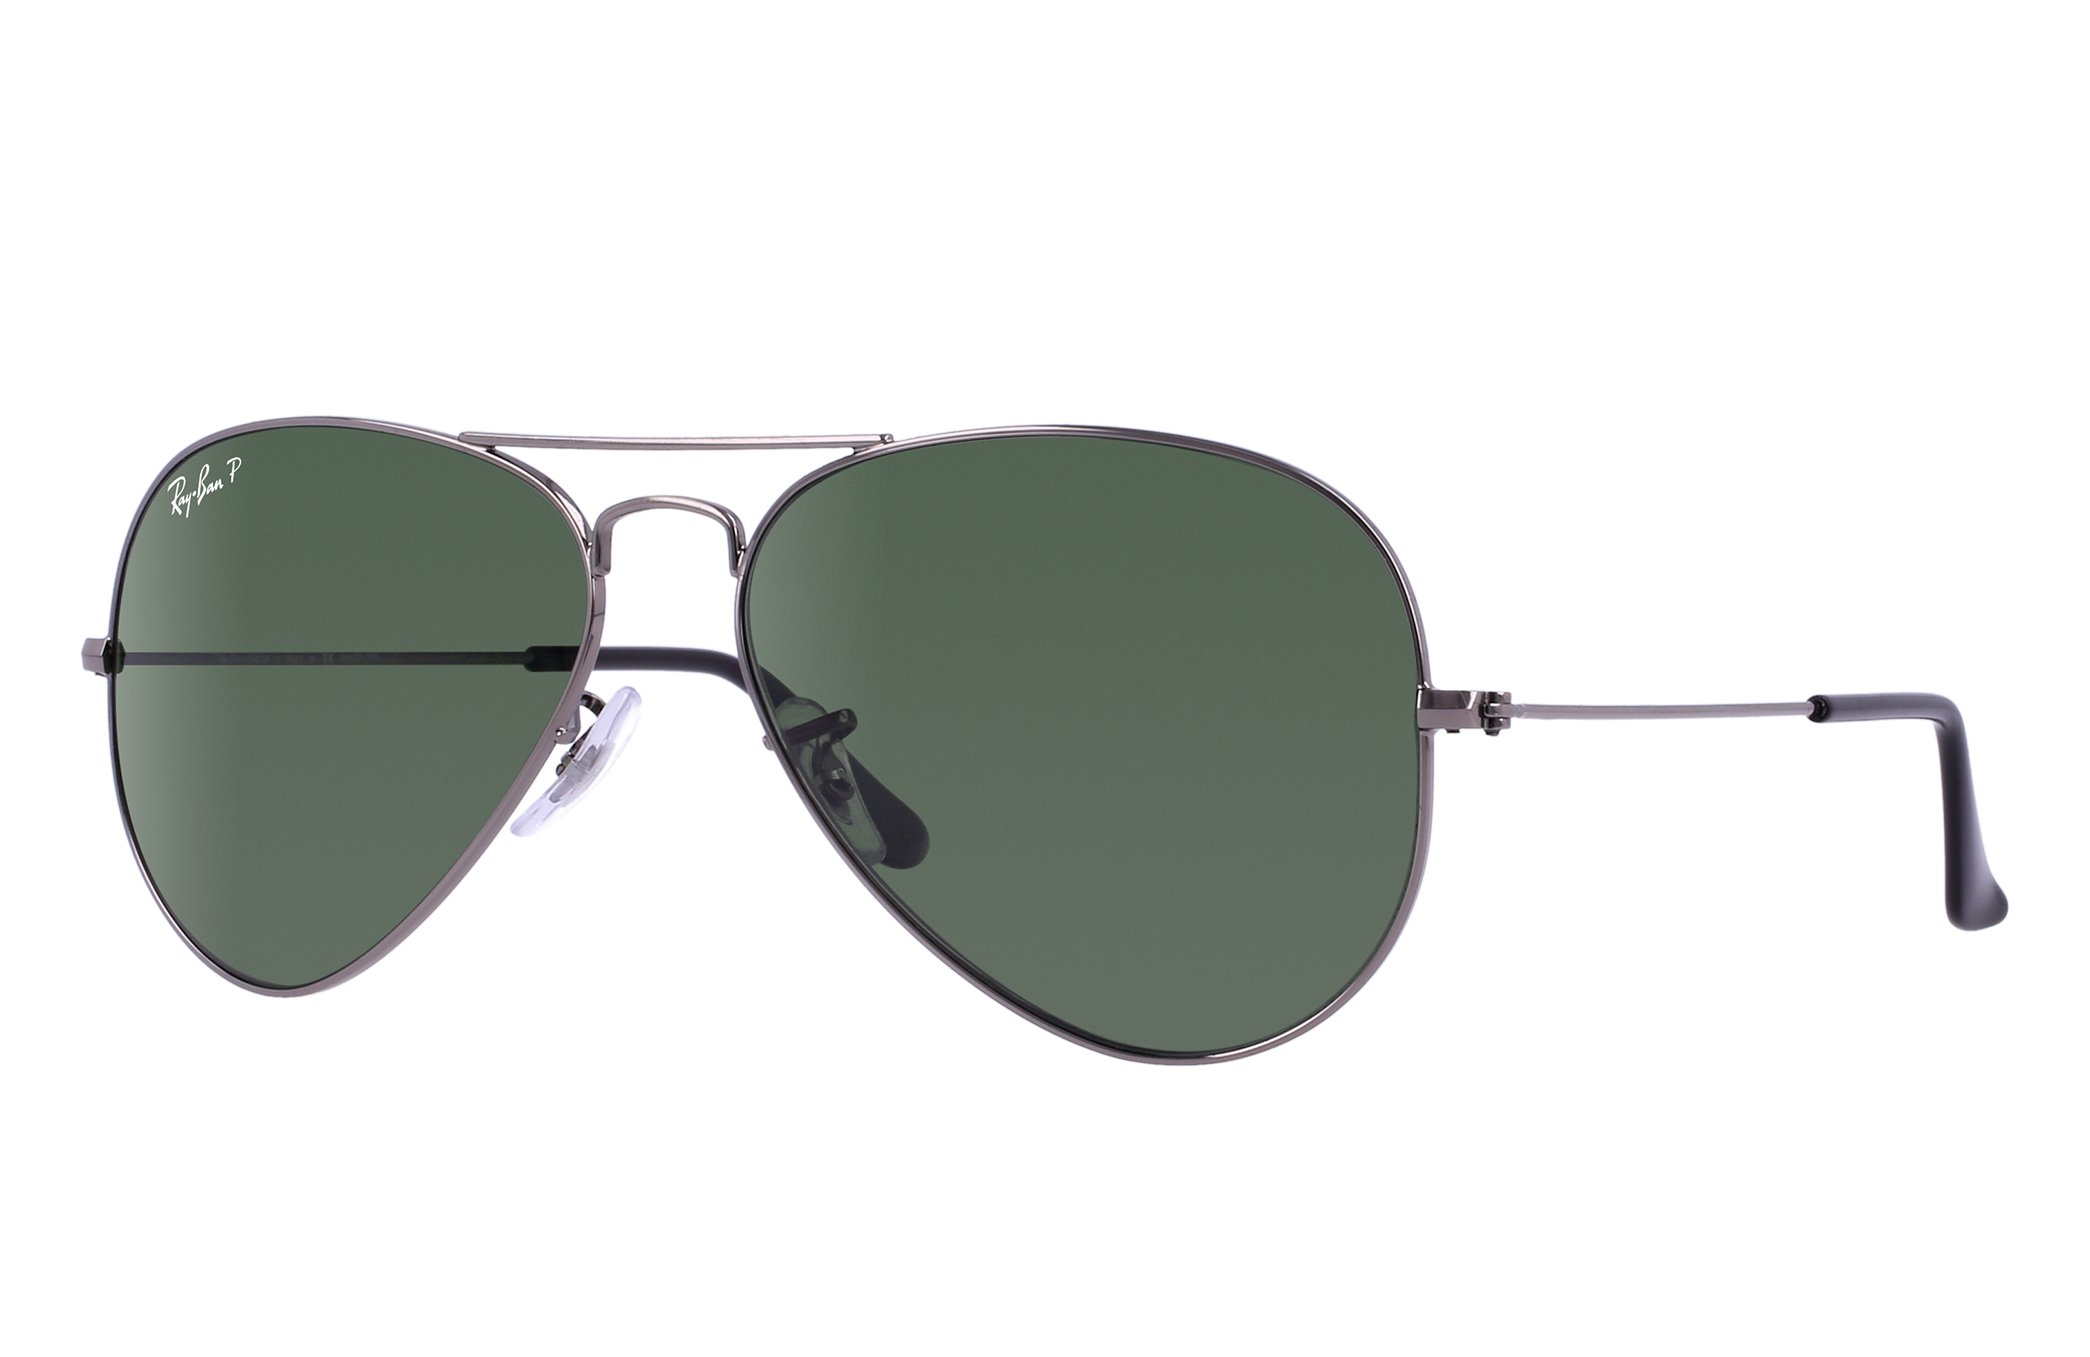 Ray-Ban RB3025 Aviator Sunglasses (58 mm, Gunmetal Frame/Polarized Green G-15 Lens) by Ray-Ban